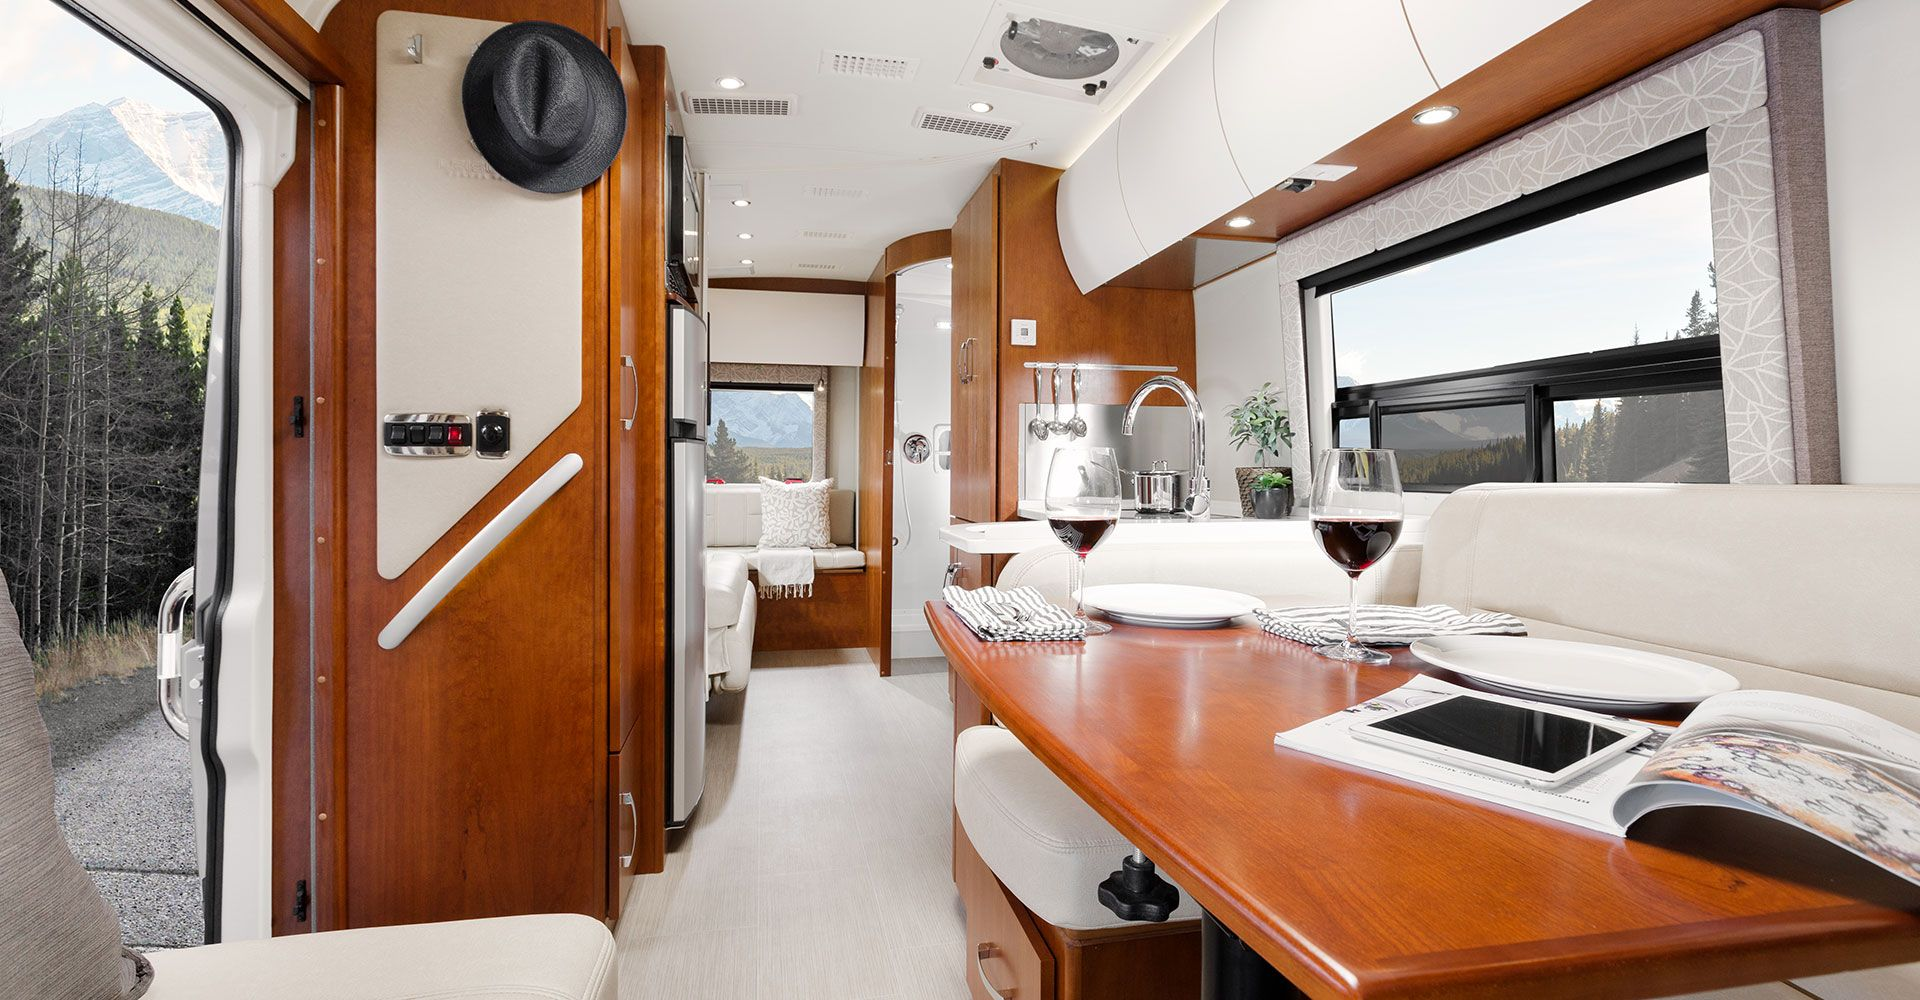 Explore The Serenity Class C RV By Leisure Travel Vans See Photos Videos